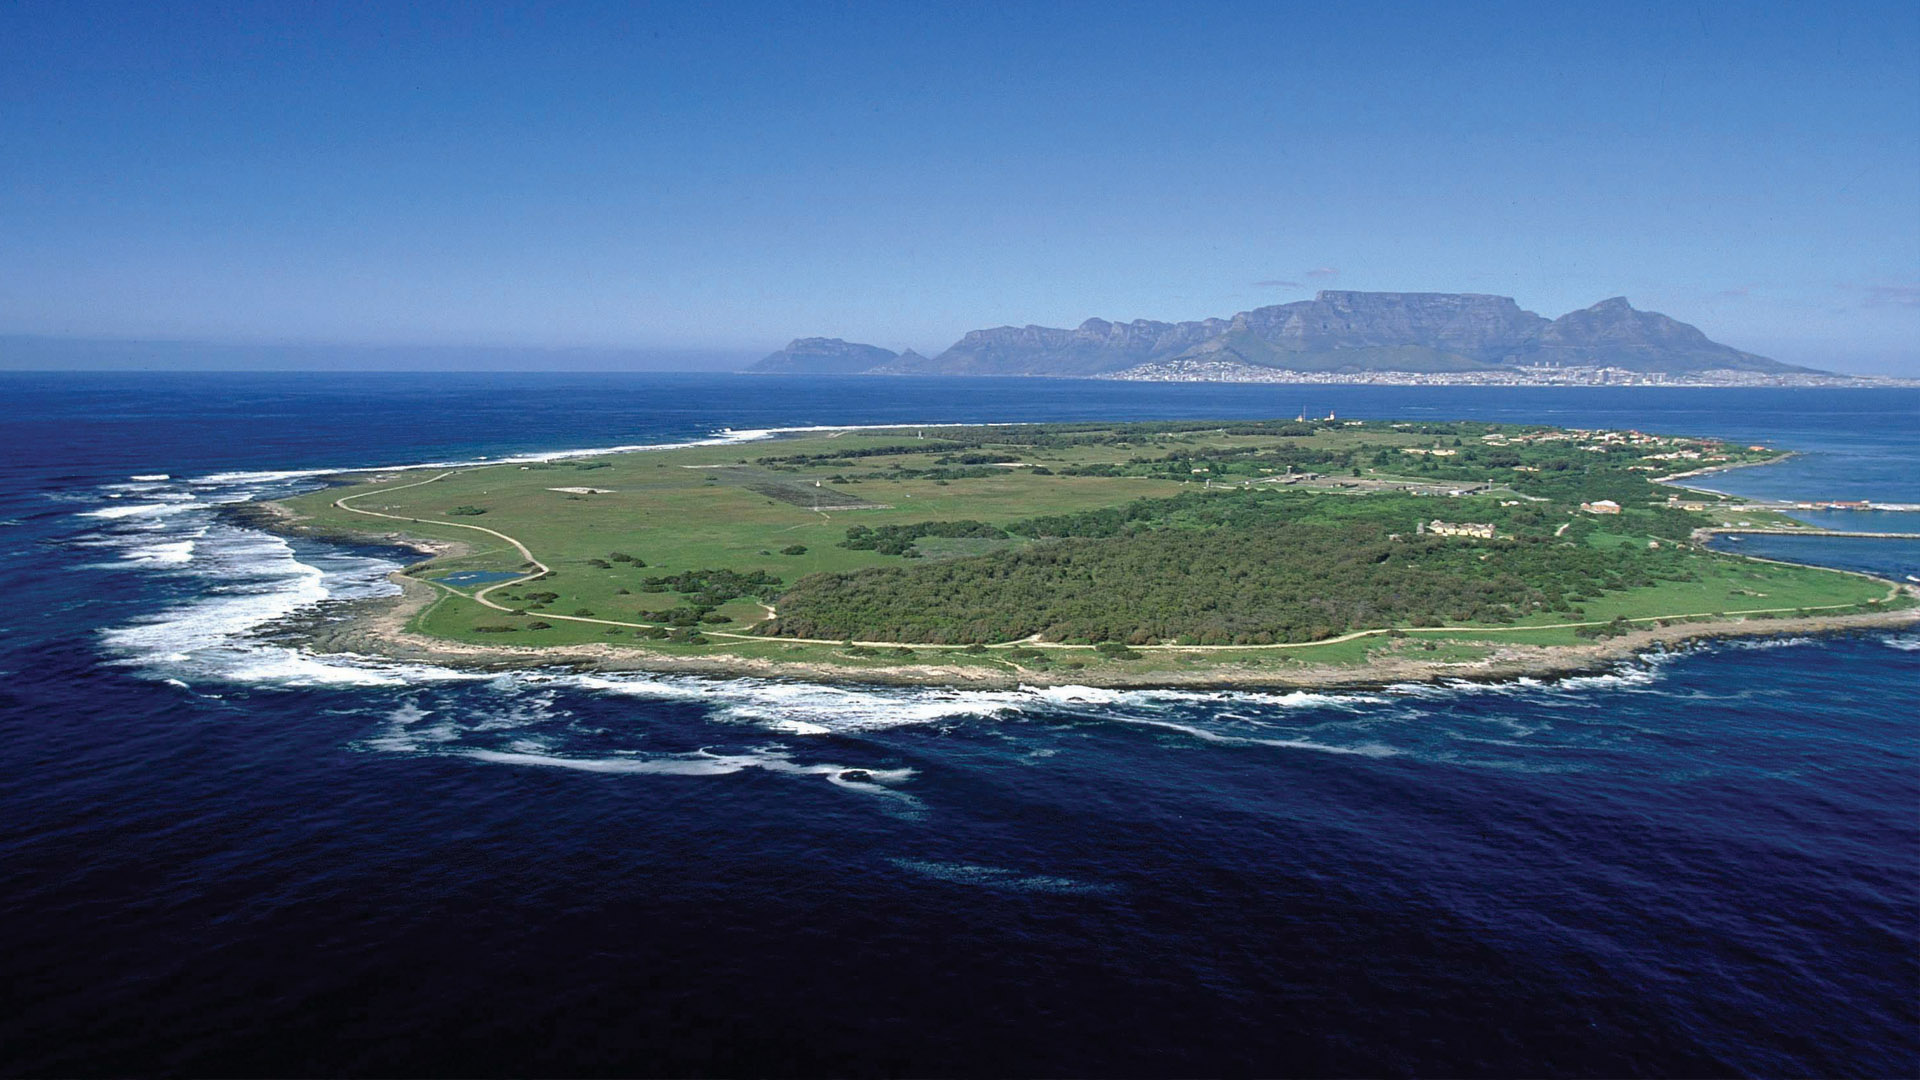 Cape Town is the fifth in line for having the best blue sky on earth, according to the UK's National Physical Laboratory.